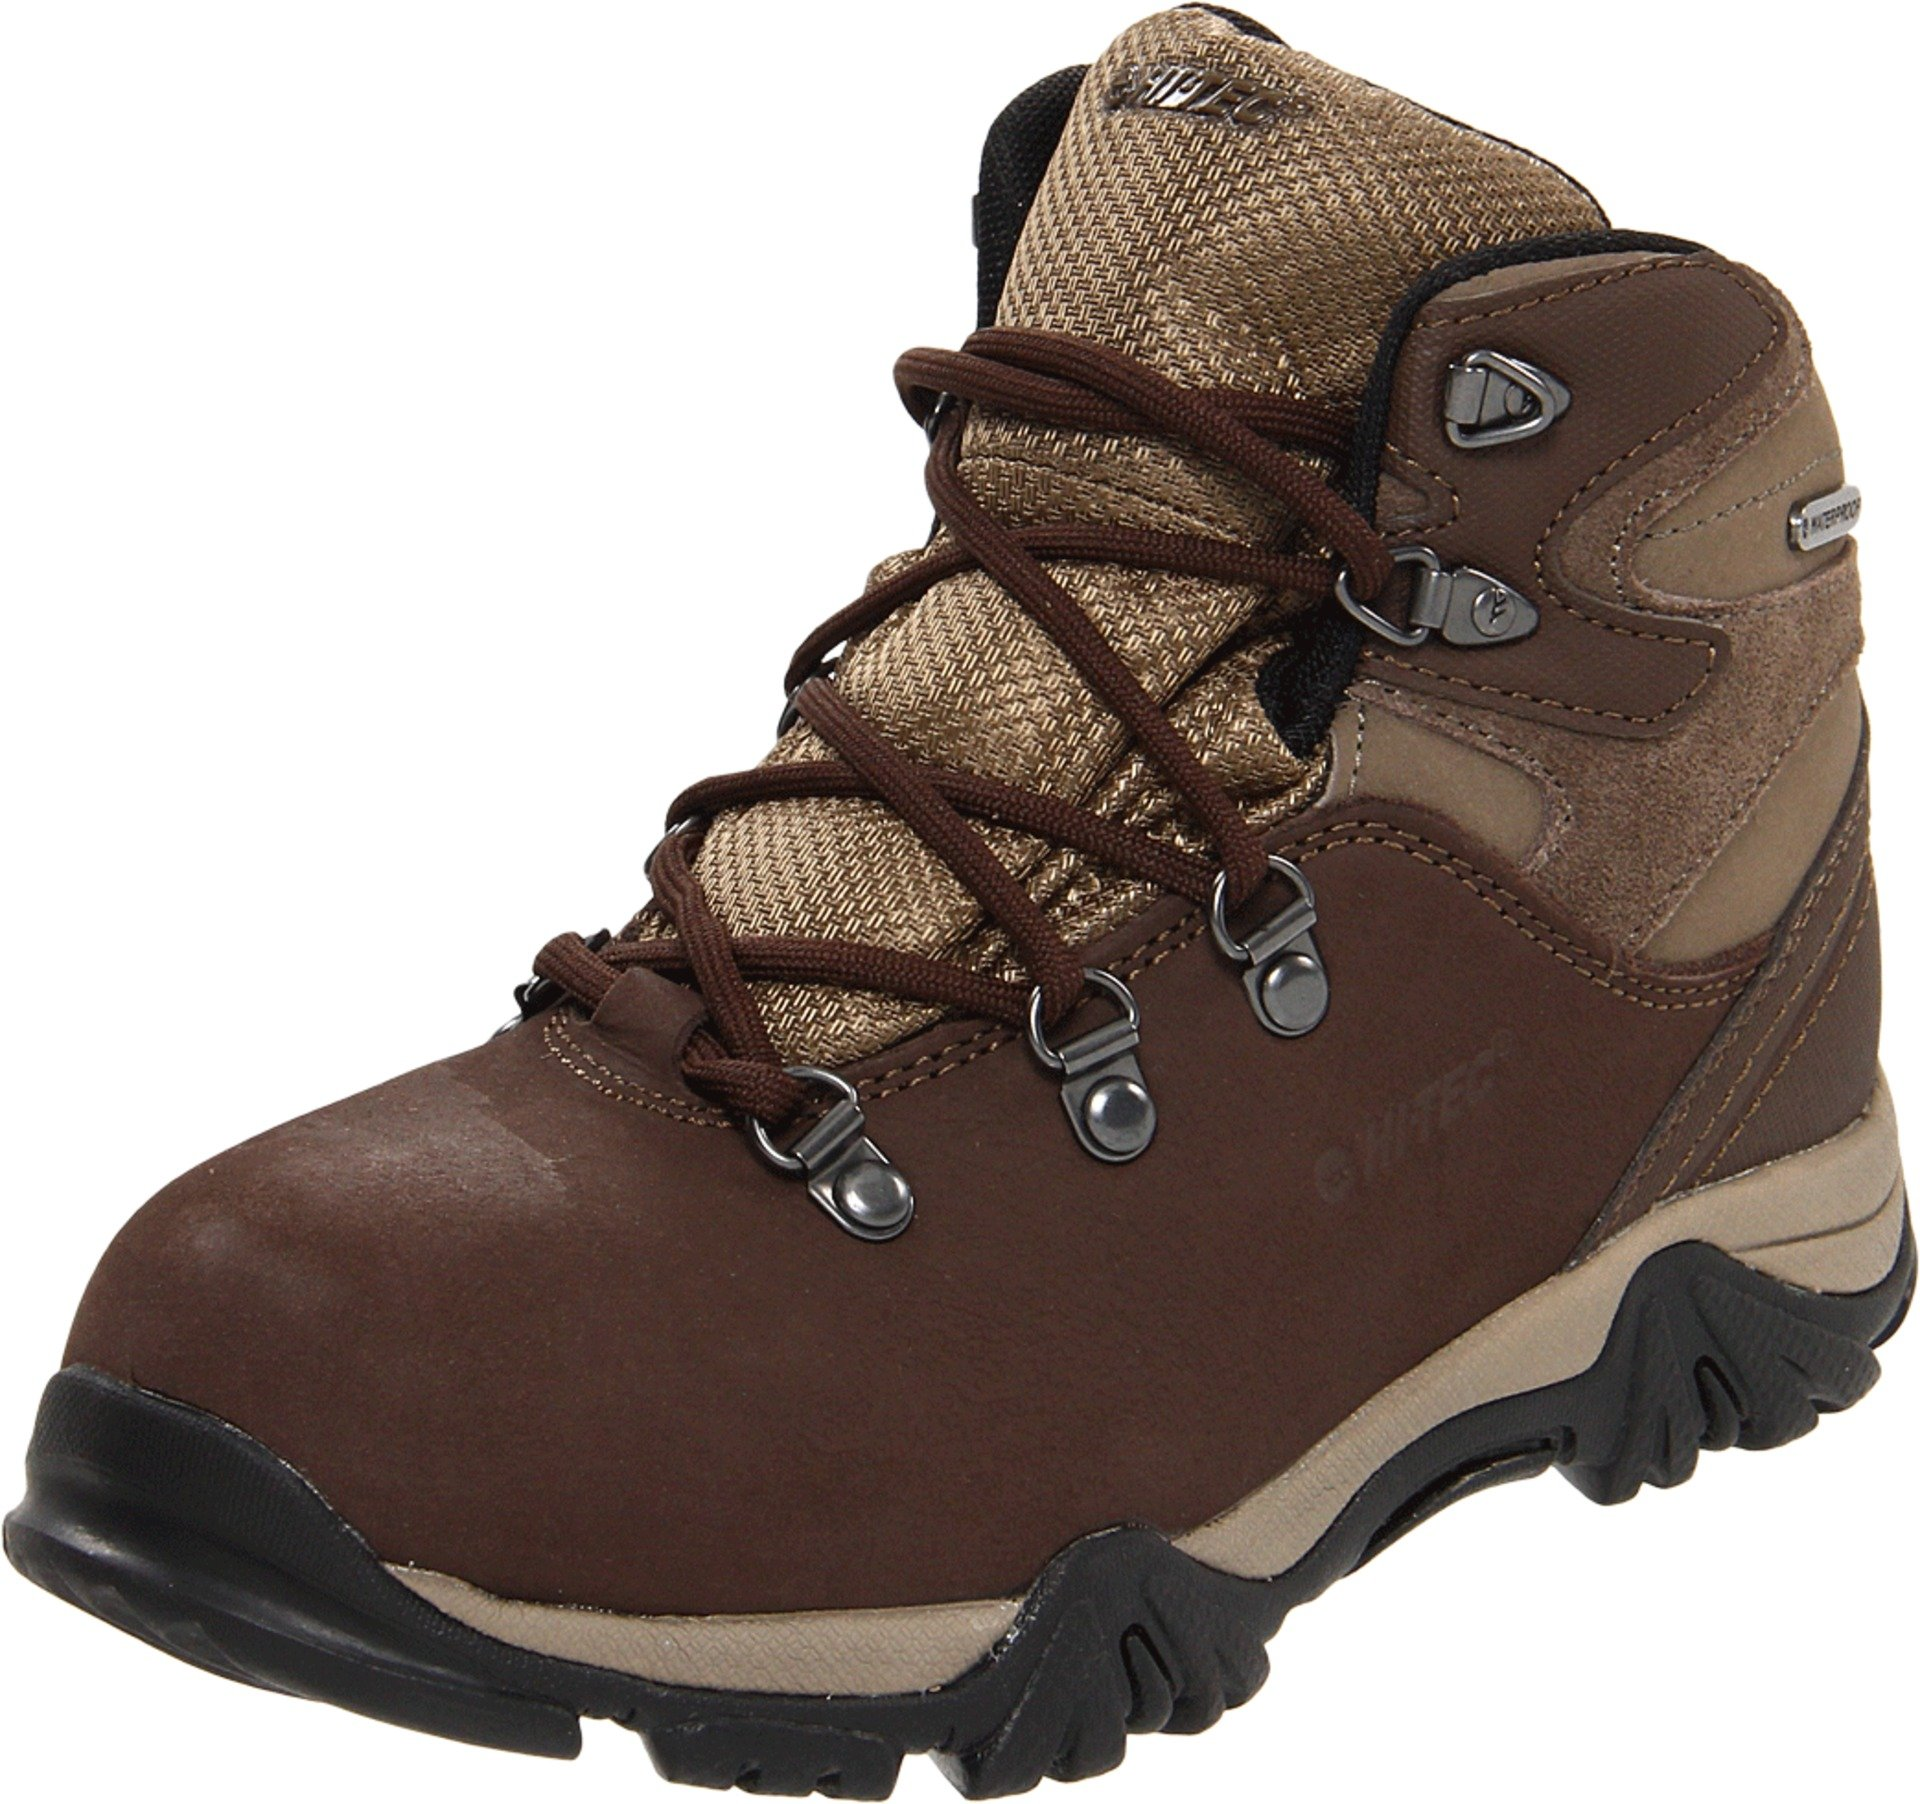 Hi-Tec Oakhurst Trail WP Hiking Boot (Toddler/Little Kid/Big Kid),Chocolate/Taupe,2.5 M US Little Kid